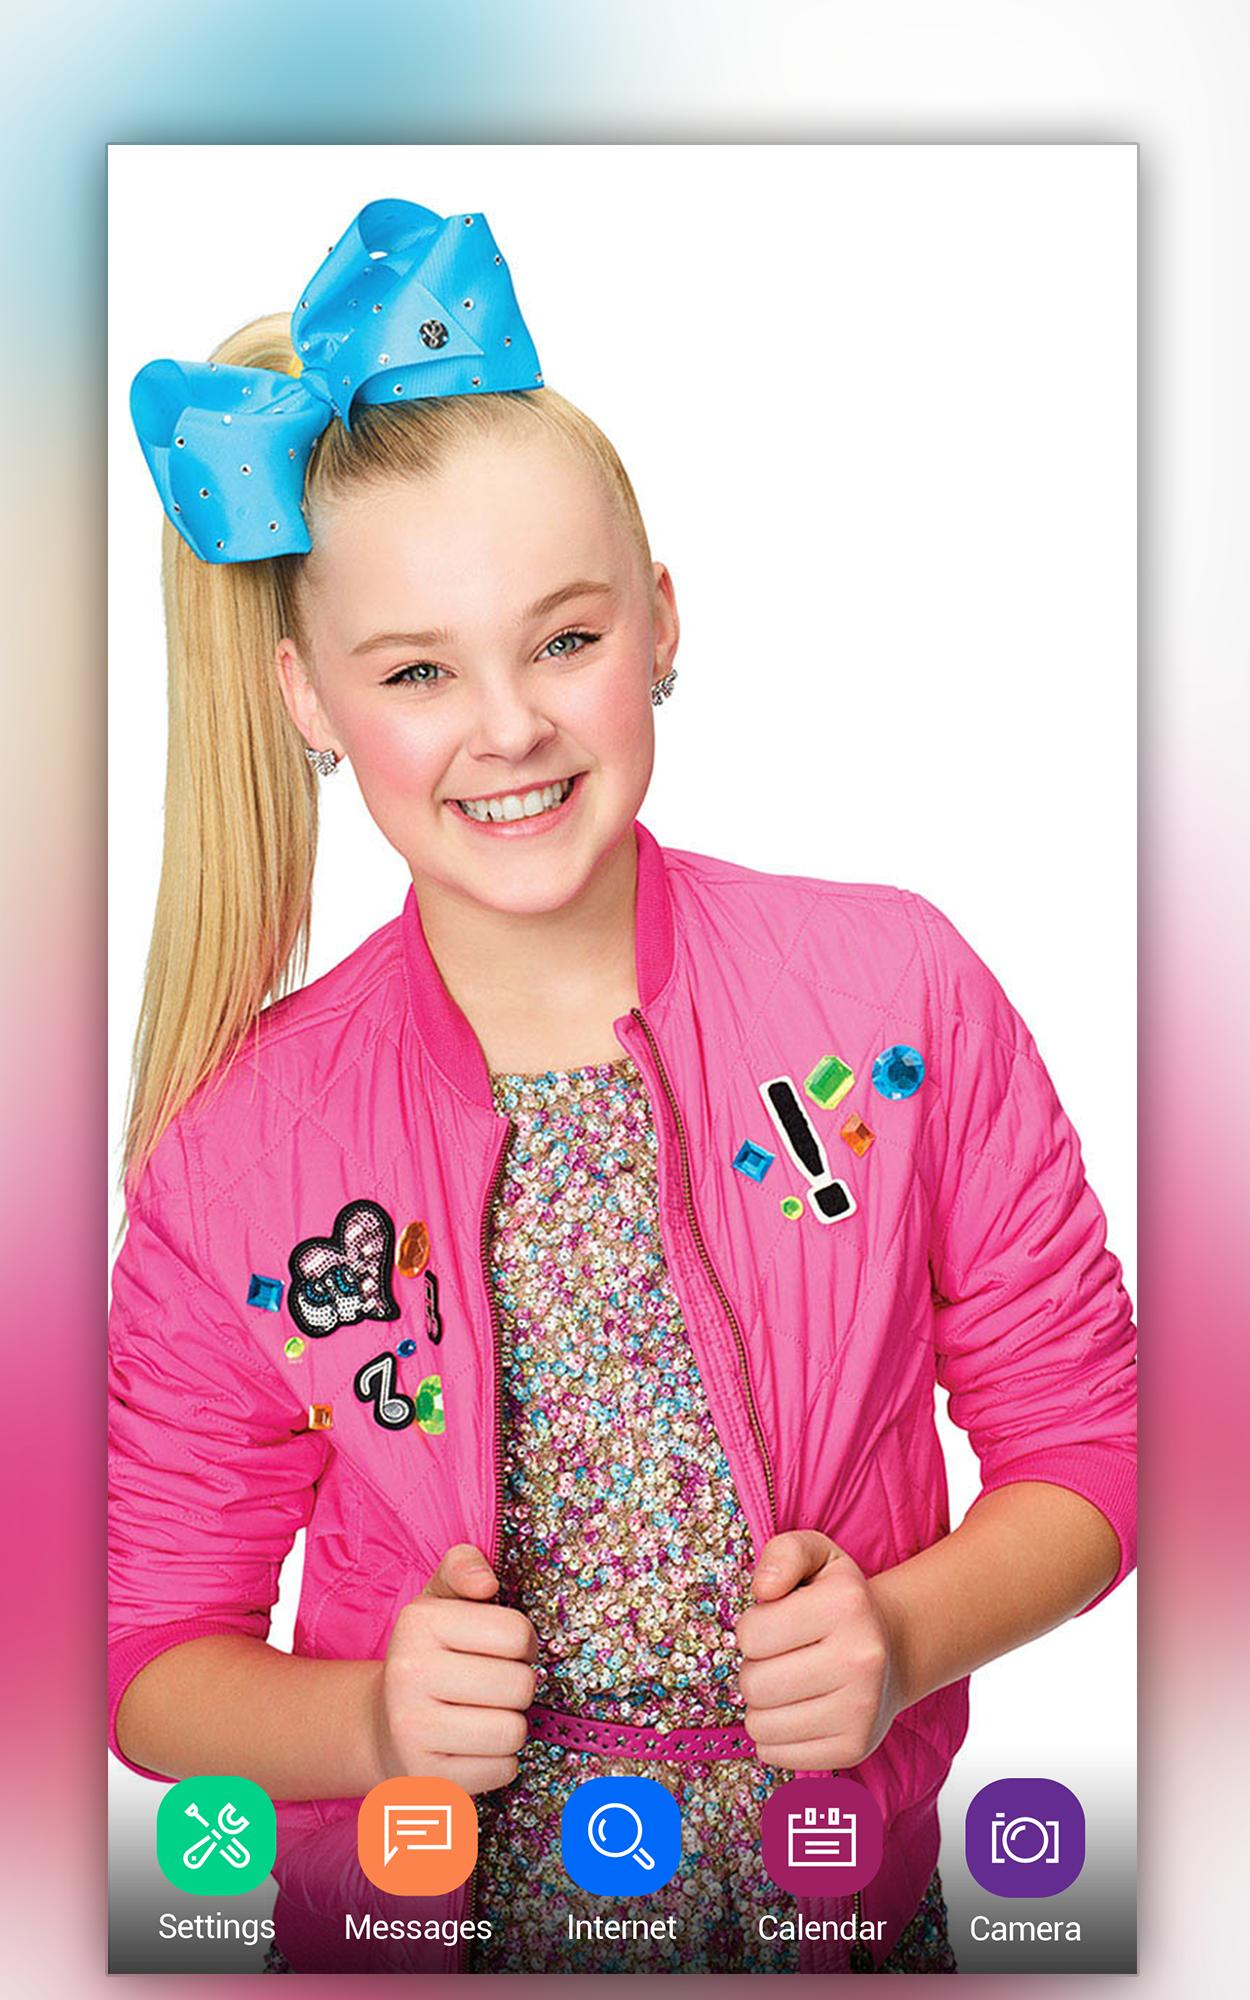 Jojo Siwa Wallpapers Hd 4k Backgrounds For Android Apk Download